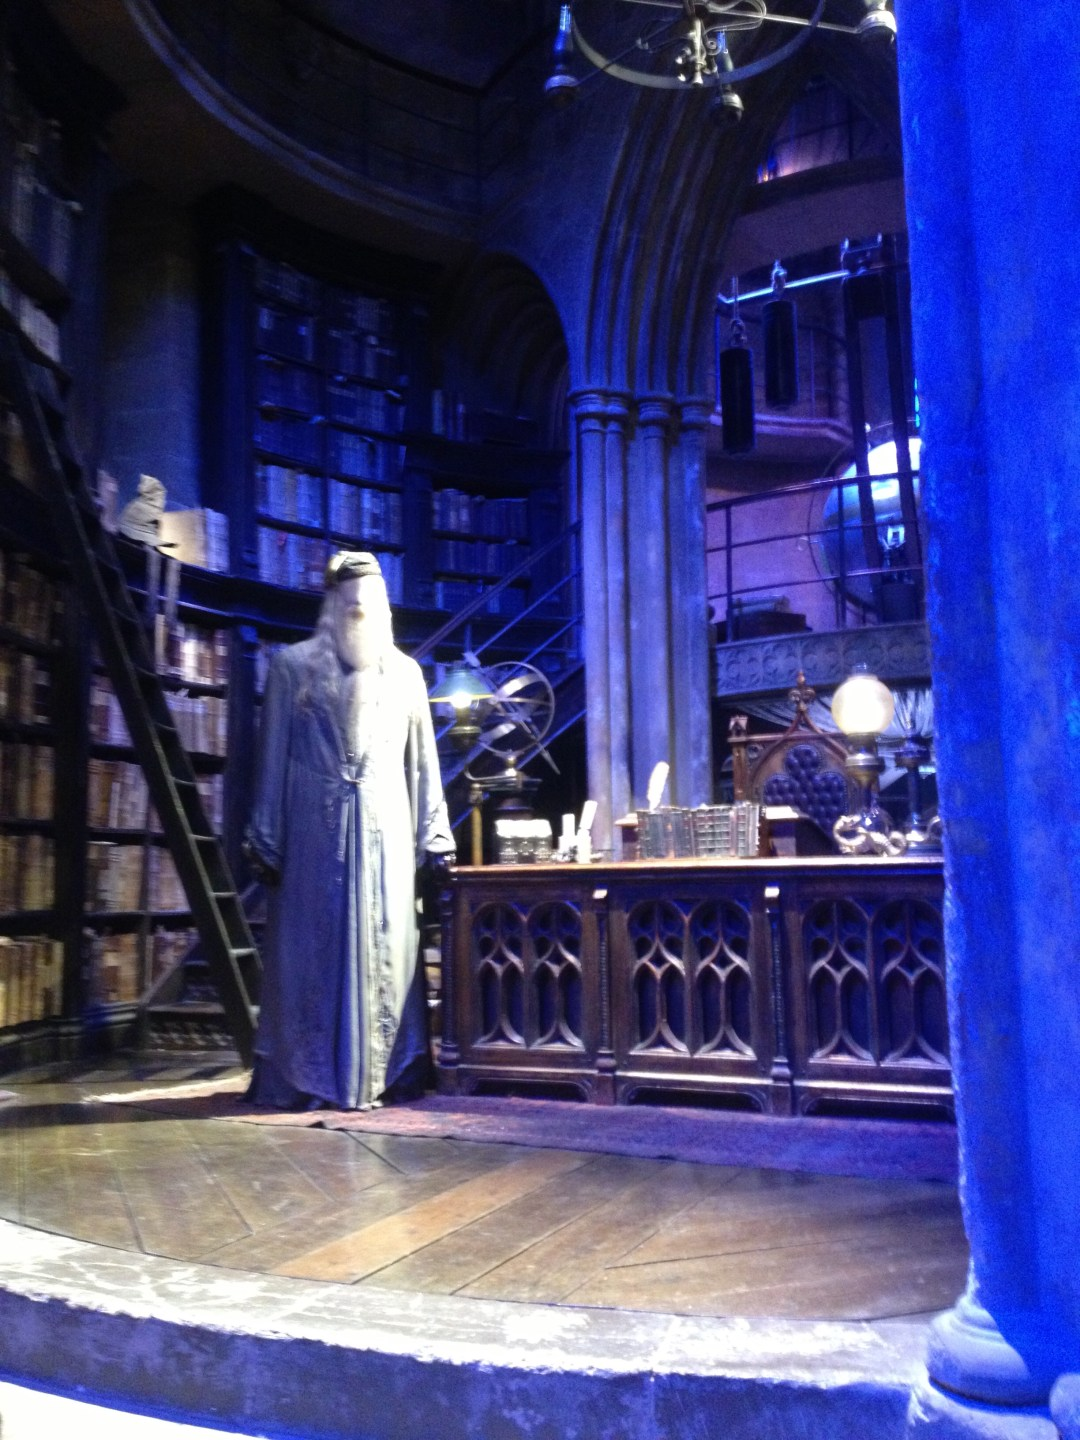 Dumbledore's office - Warner Brothers Studio: The Making of Harry Potter Tour